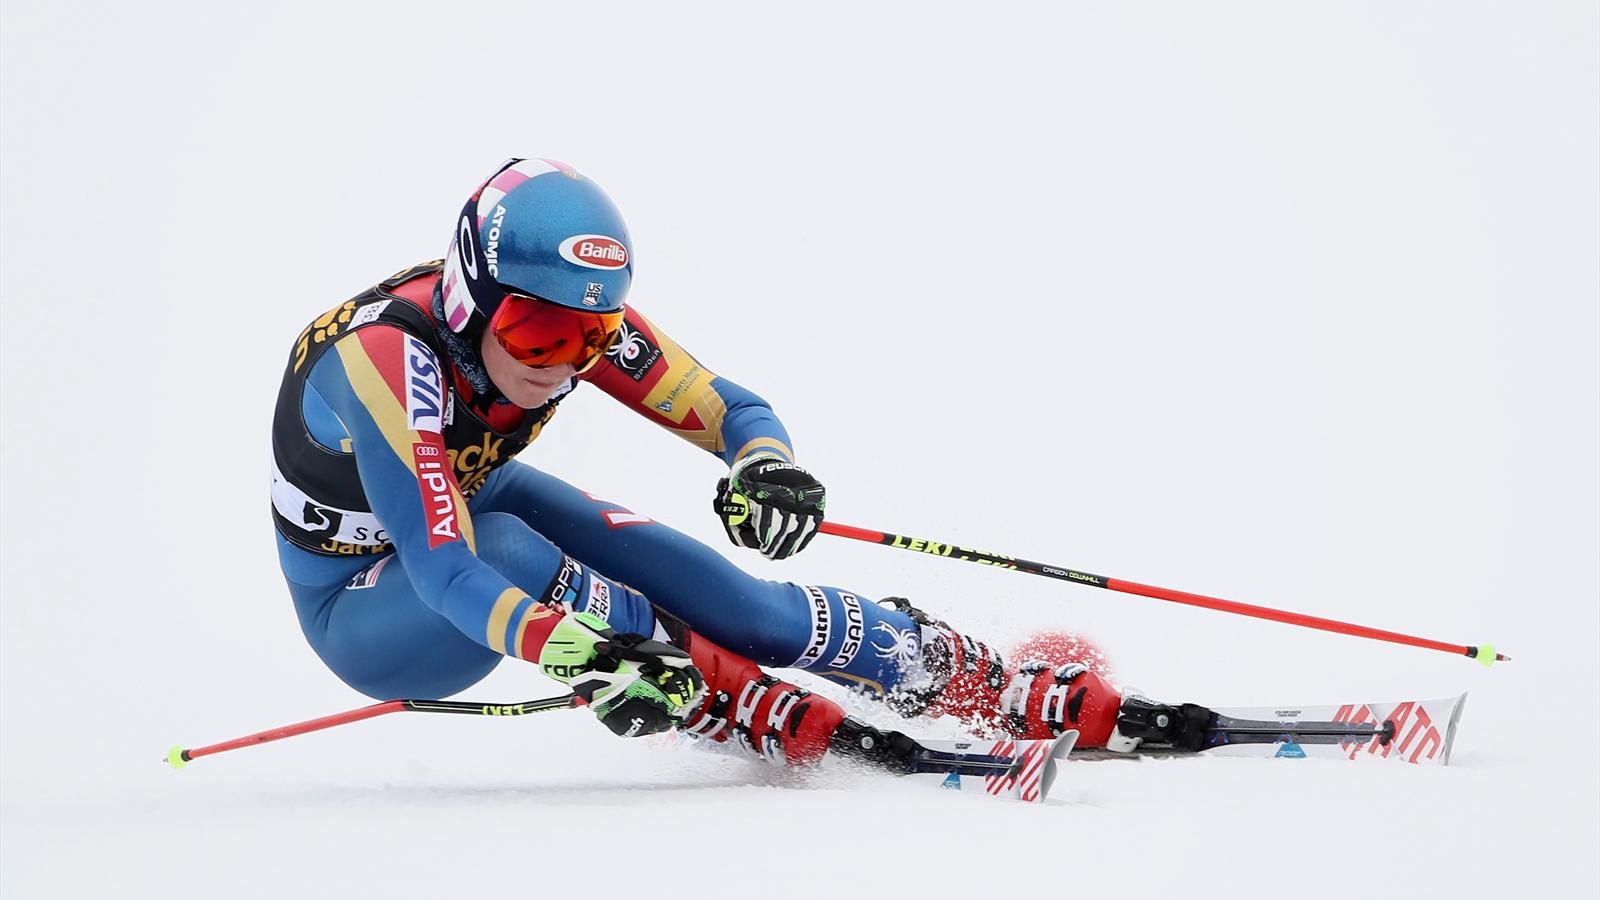 Mikaela Shiffrin wins on day one in Squaw Valley